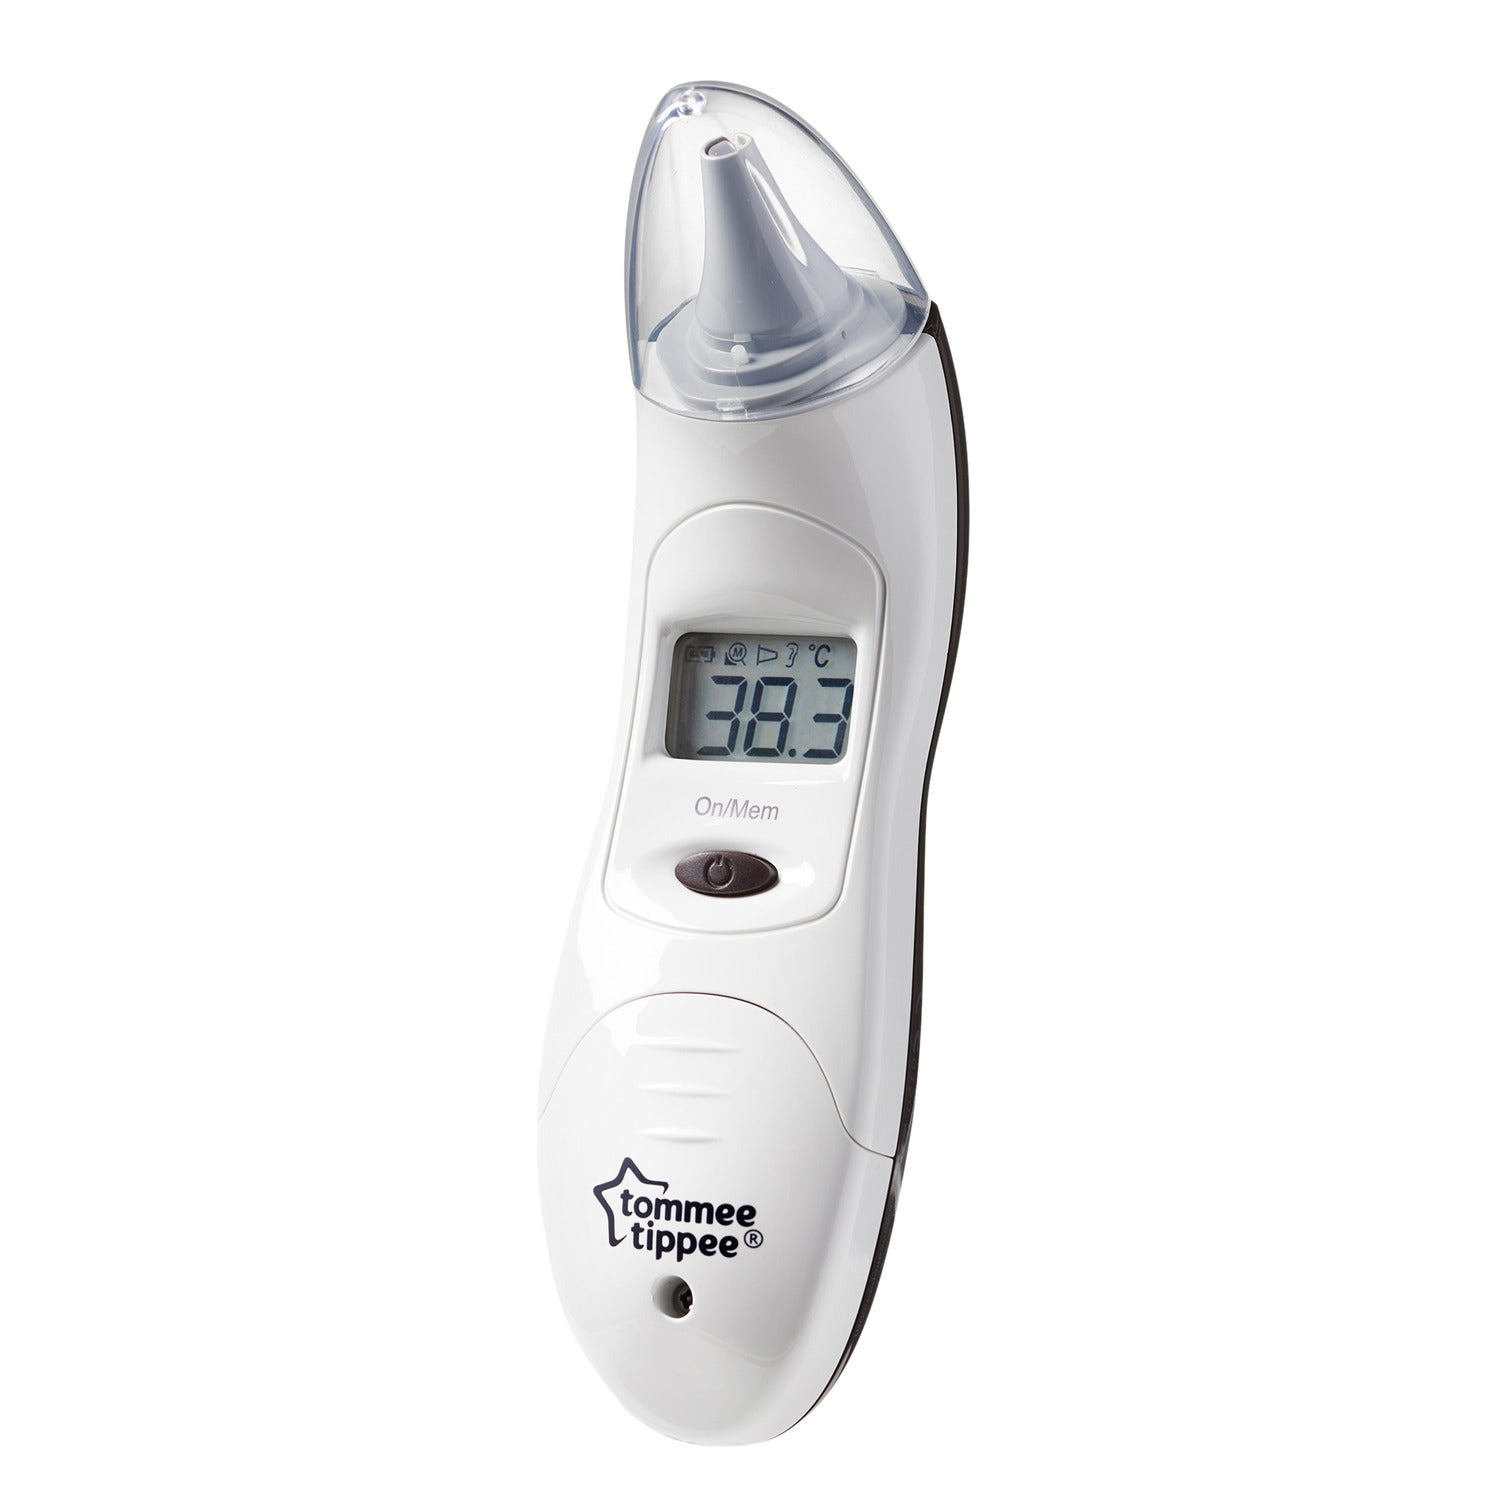 Tommee Tippee - Digital Ear Thermometer